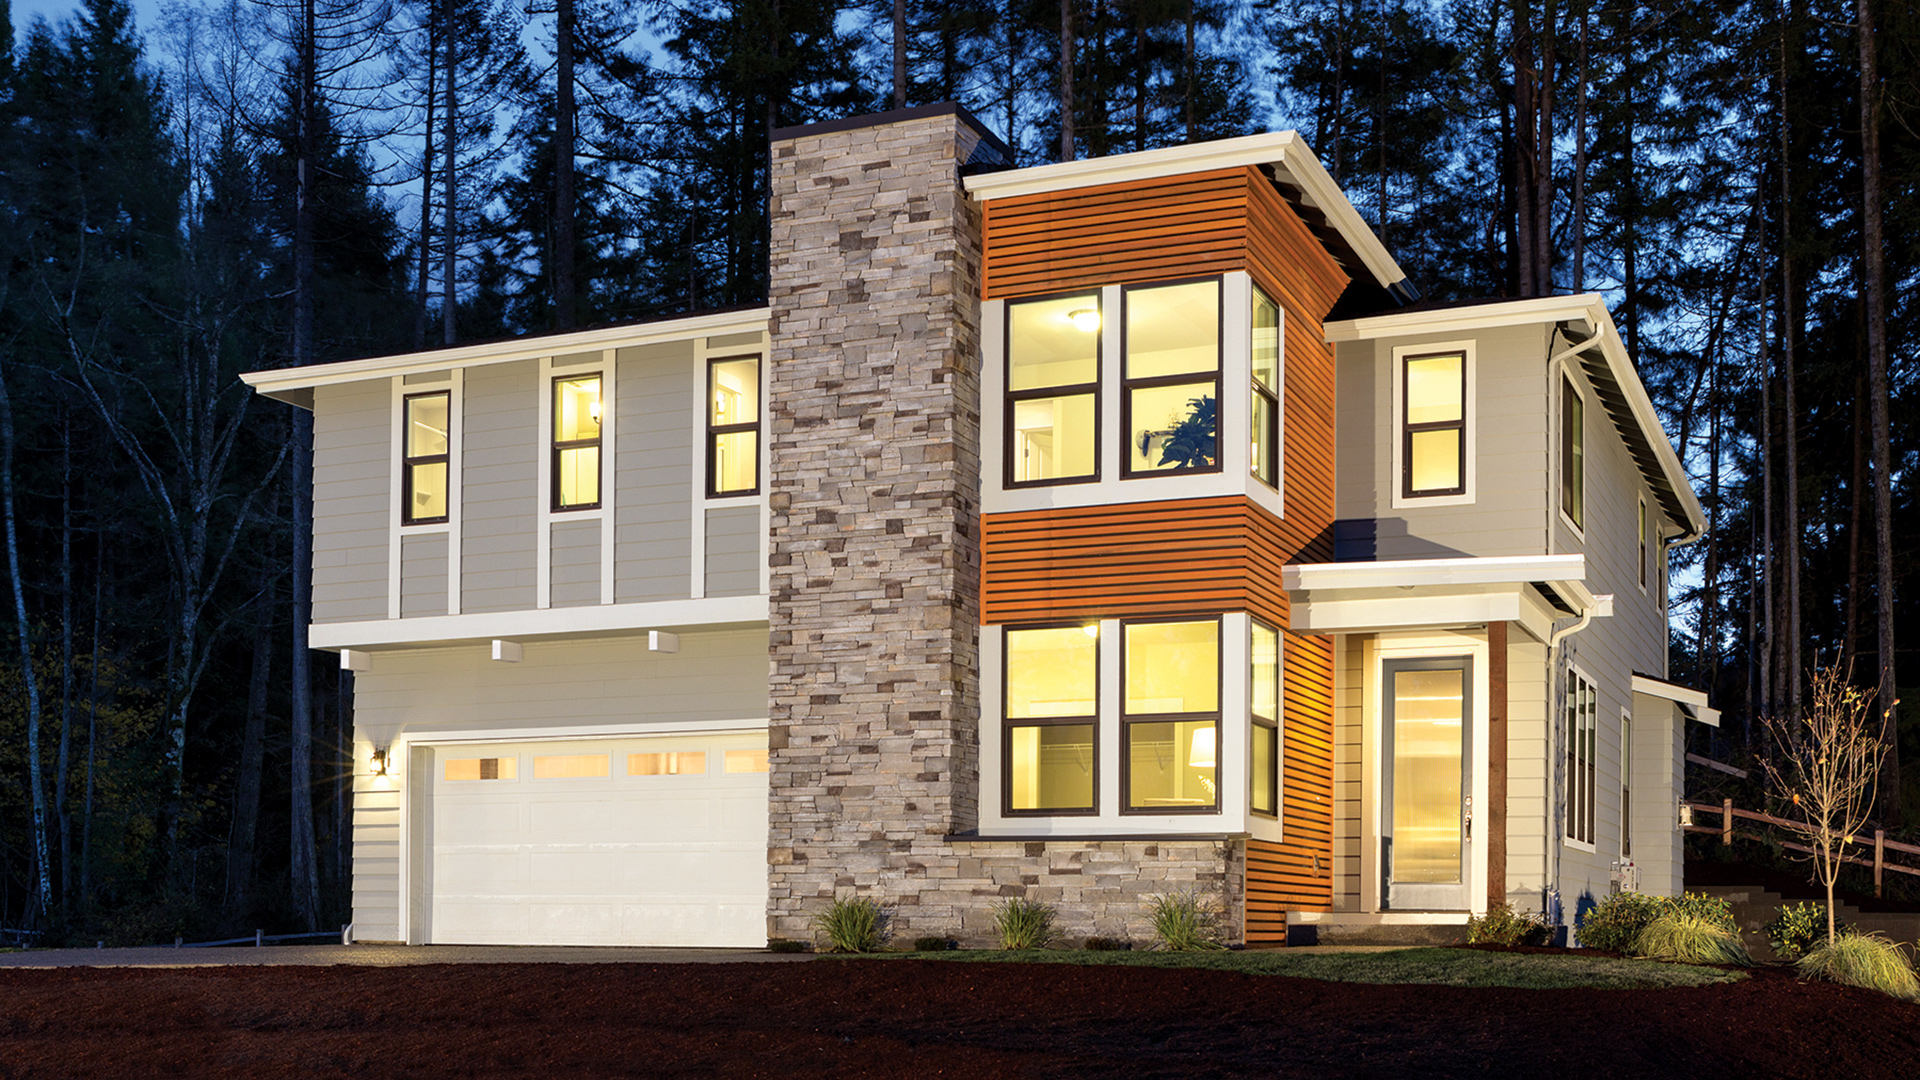 Peachy New Luxury Homes For Sale In Portland Or Toll Brothers At Home Interior And Landscaping Mentranervesignezvosmurscom